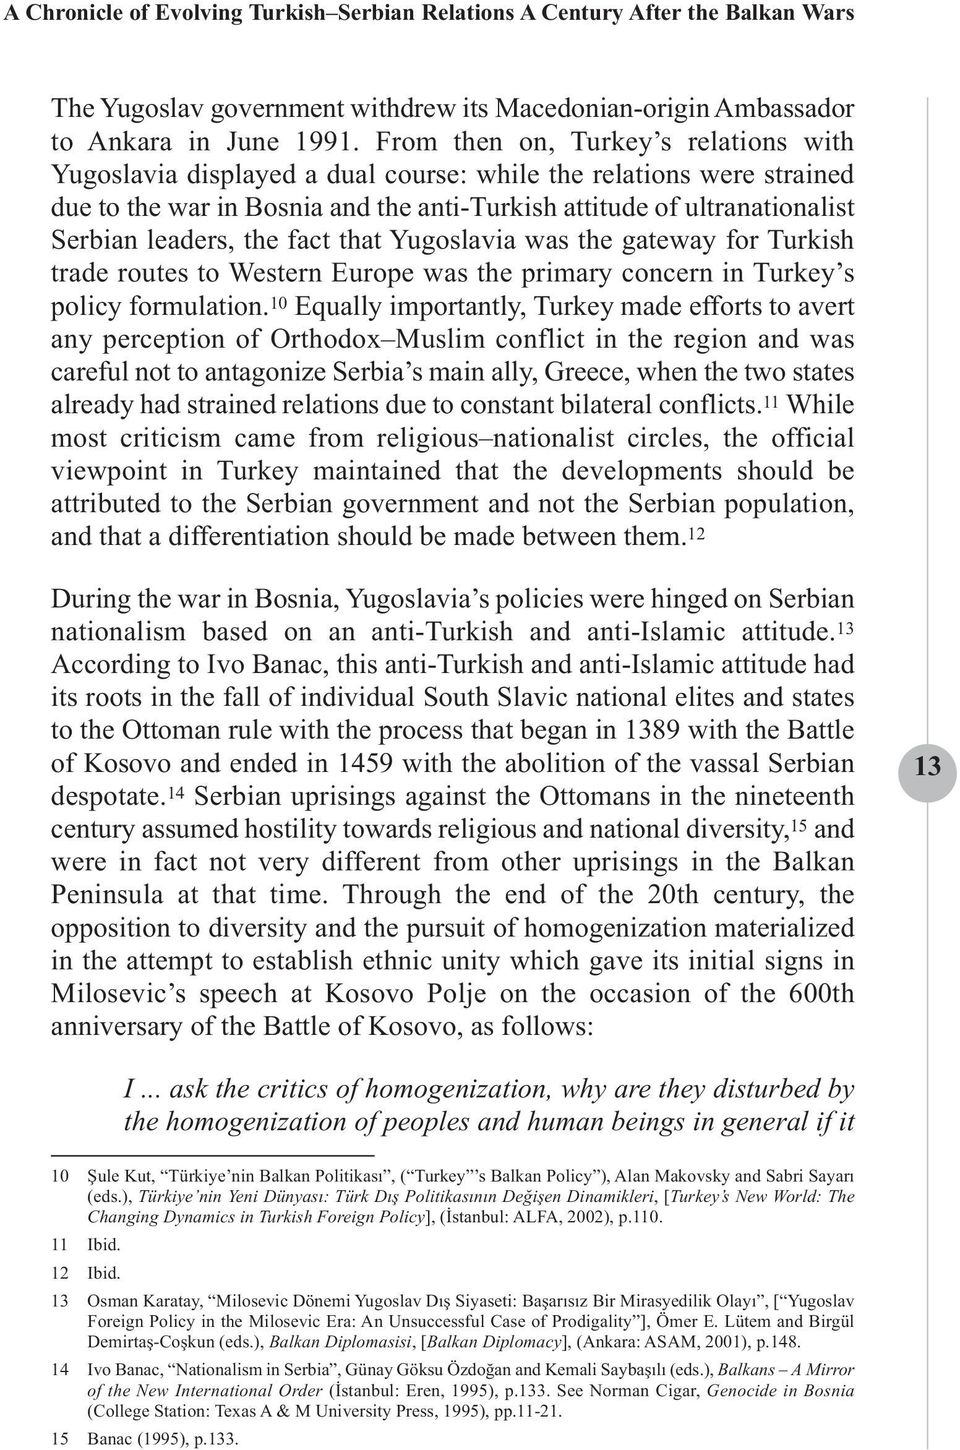 the fact that Yugoslavia was the gateway for Turkish trade routes to Western Europe was the primary concern in Turkey s policy formulation.